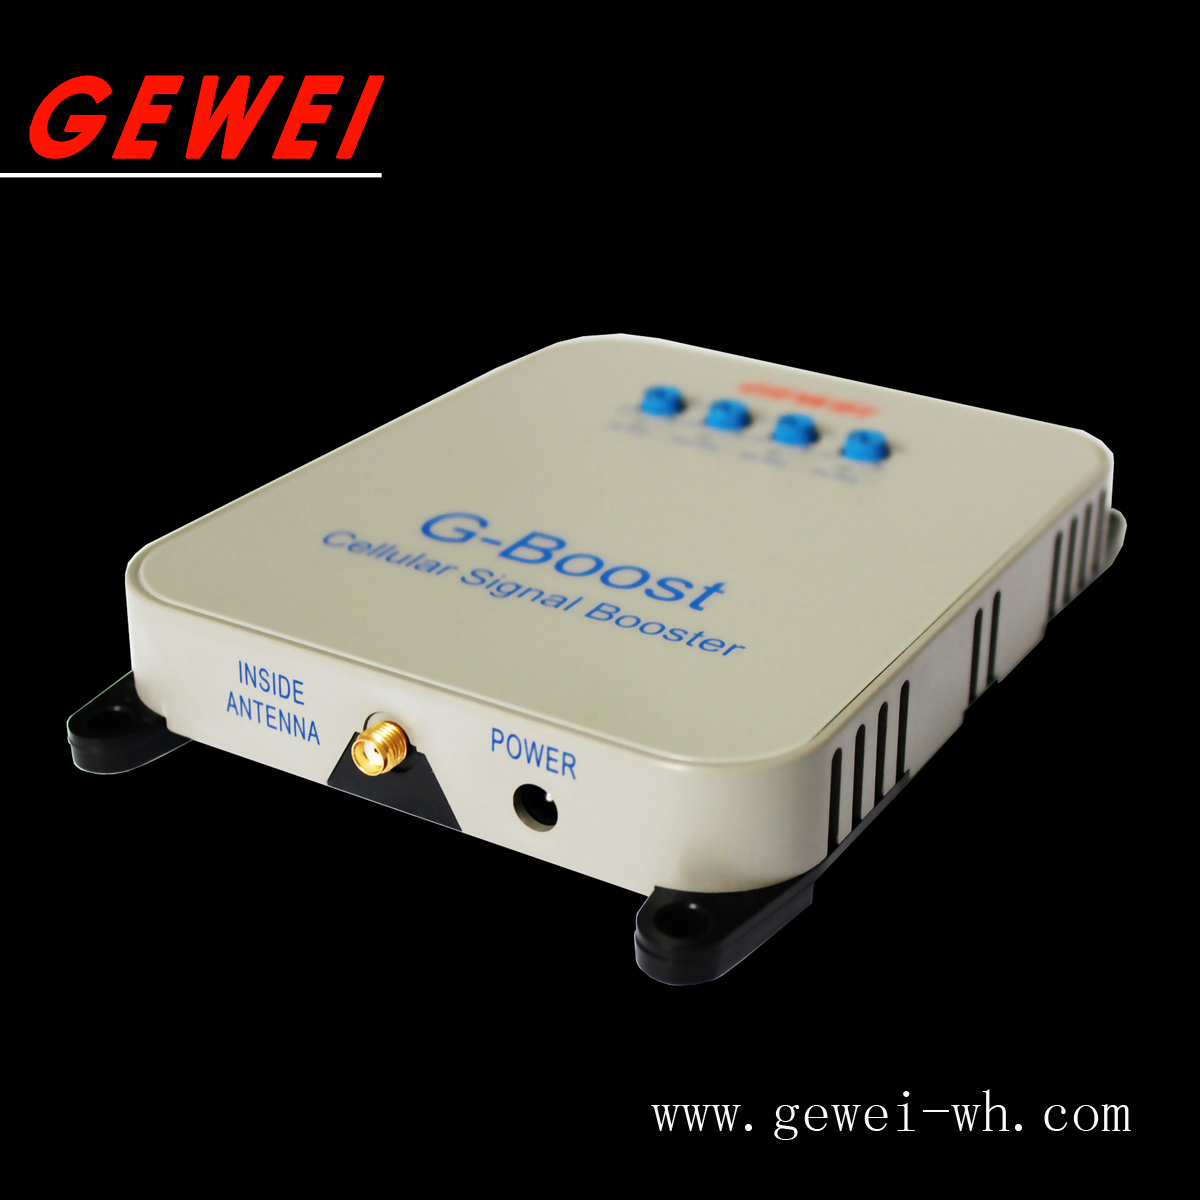 High Quality Wireless Cellular Signal Repeater WCDMA 700MHz 850MHz 1900MHz 2100MHz 3G 4G Signal Booster, Mobile Phone Signal Booster for Home